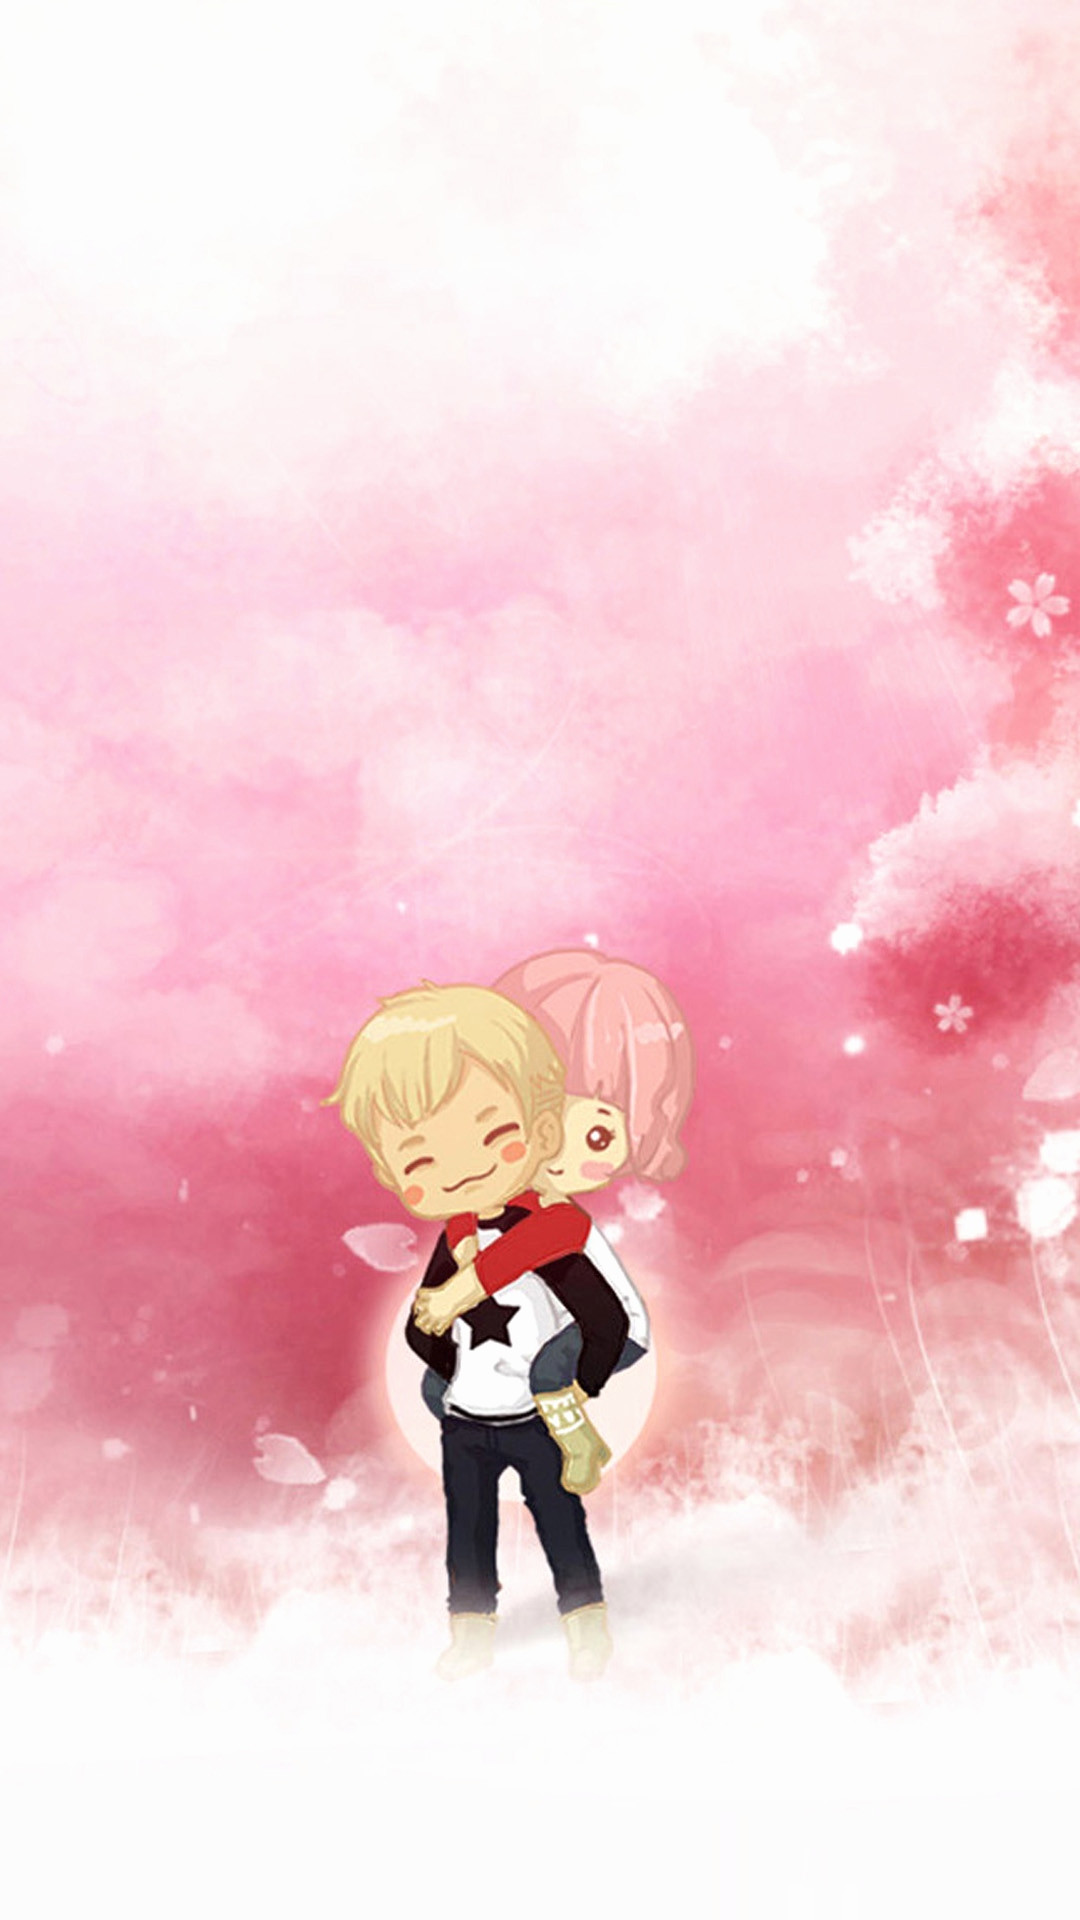 cute love backgrounds best of cute love cartoon couple fingers iphone 7 wallpaper iphone 7 wallpapers bination